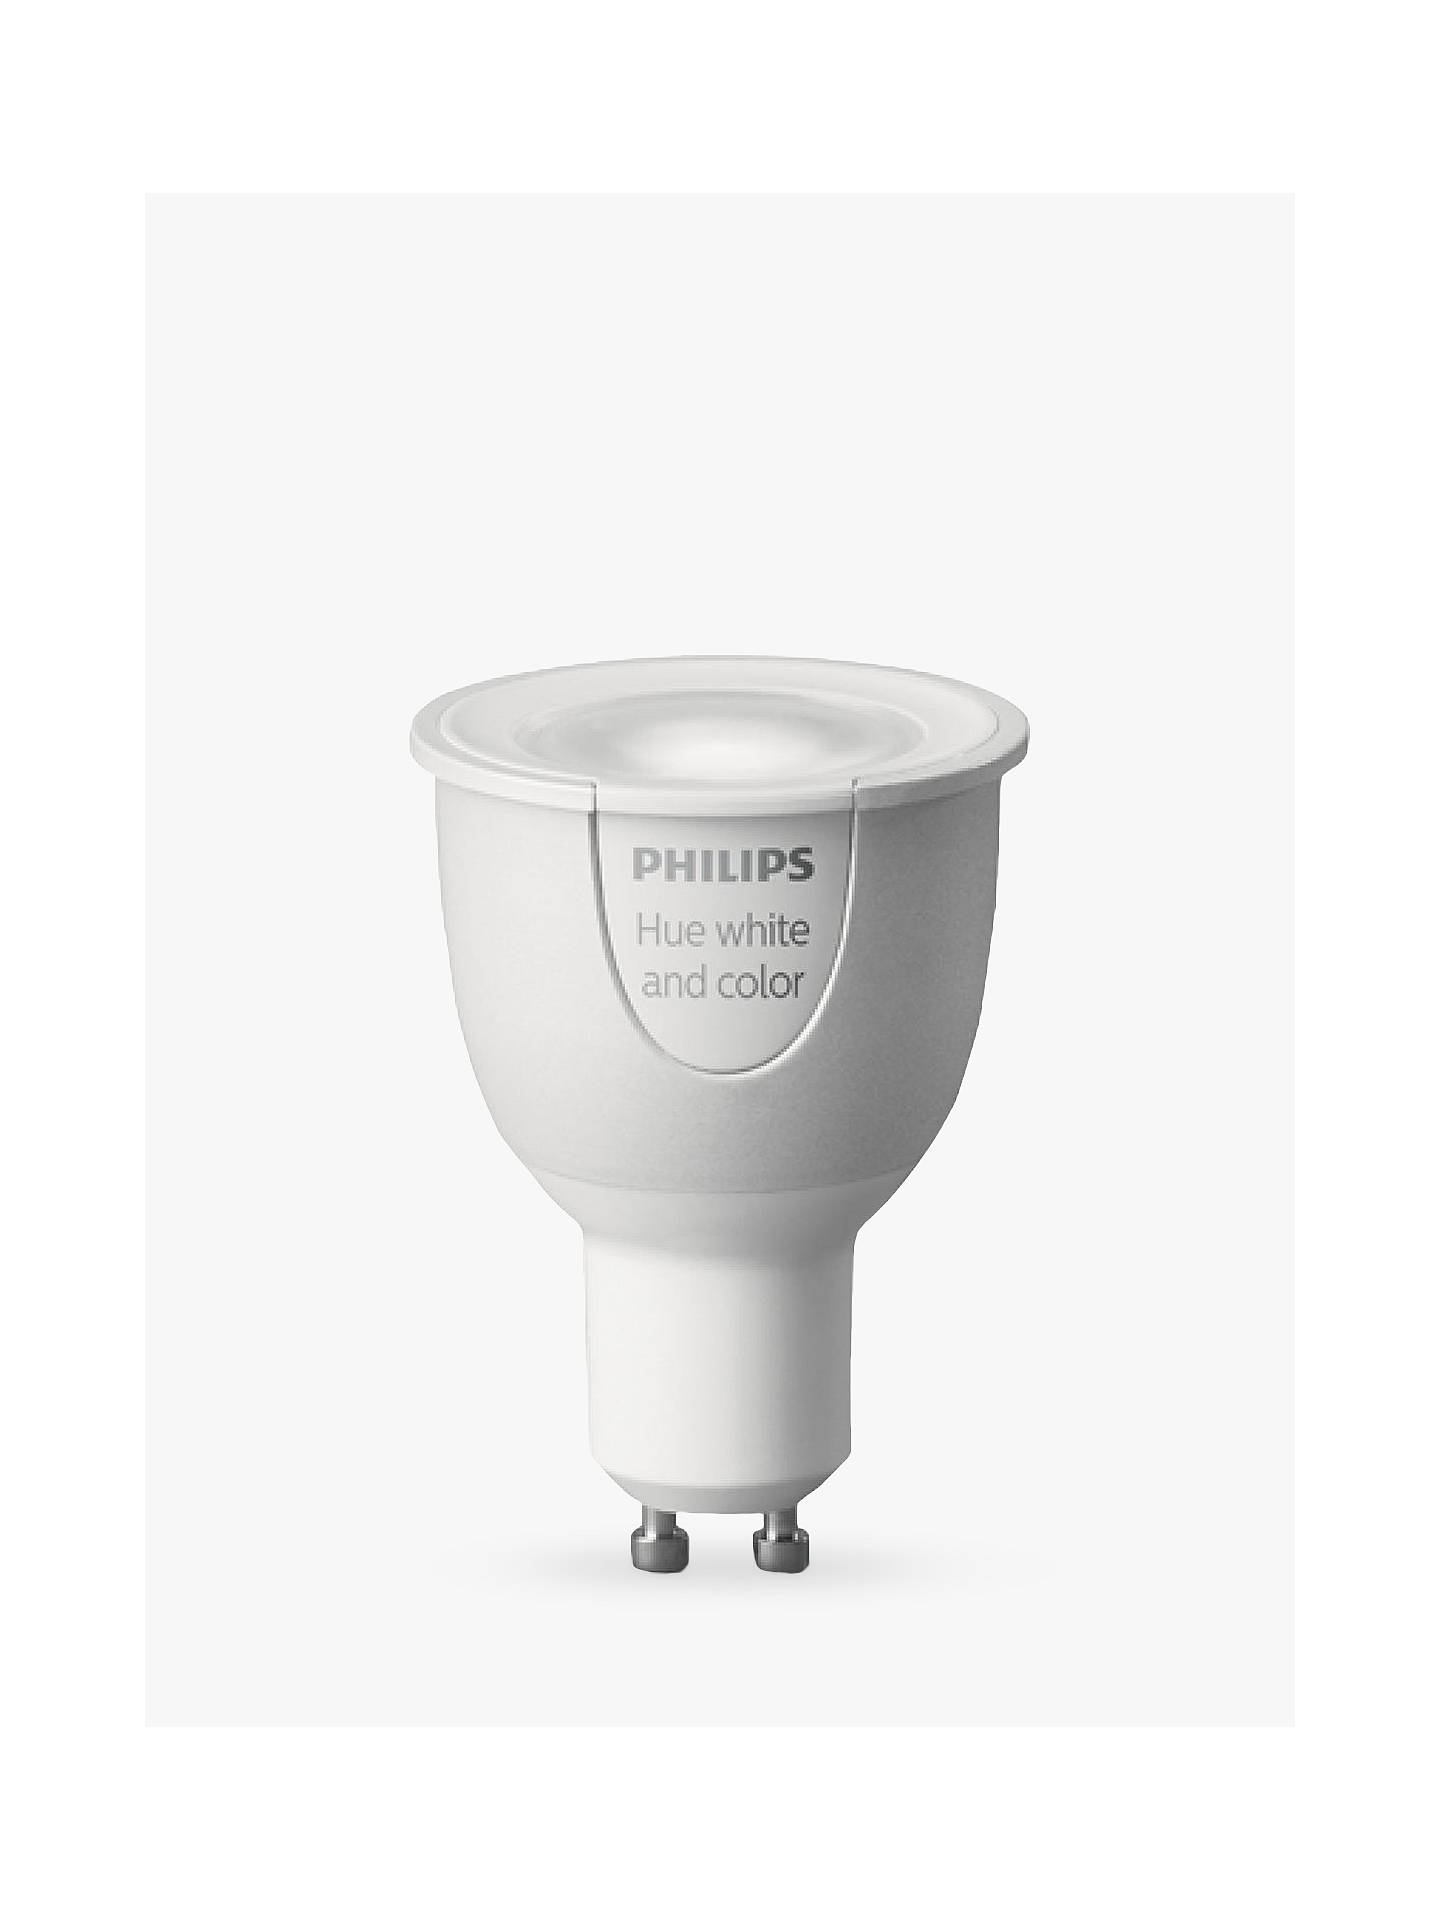 BuyPhilips Hue White and Colour Ambiance Wireless Lighting LED Colour Changing Light Bulb, 6.5W GU10 Bulb Online at johnlewis.com